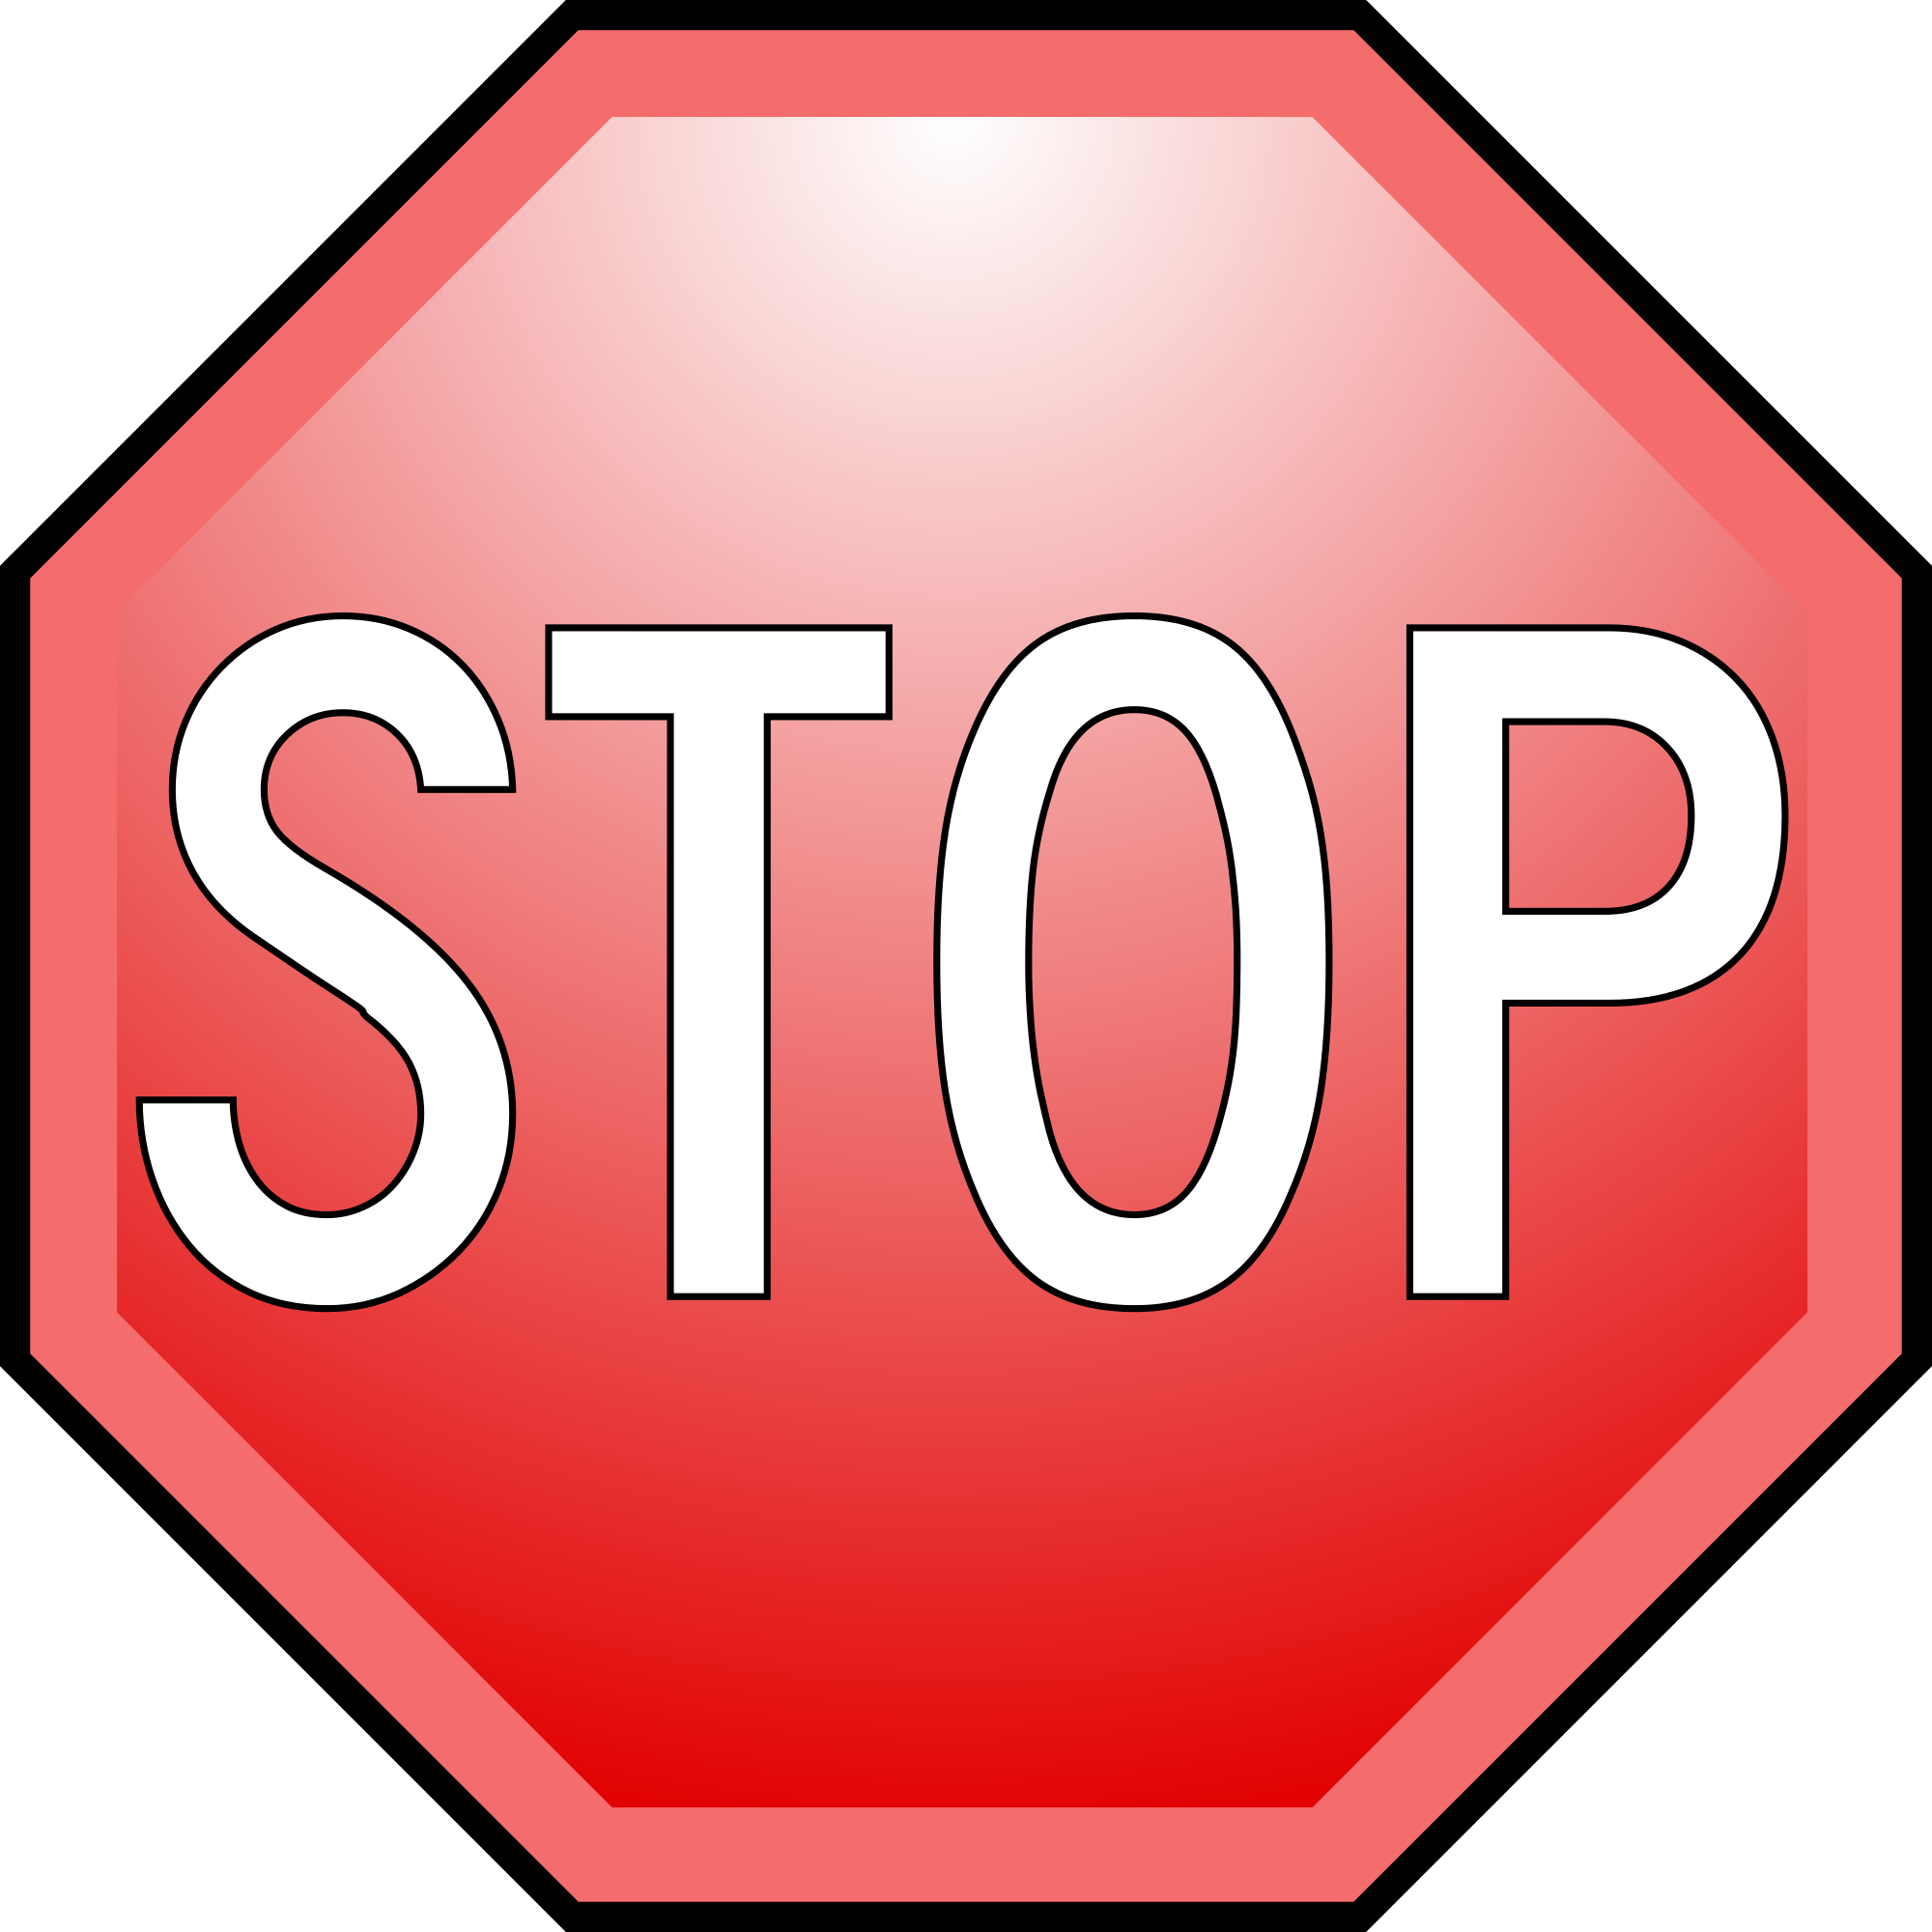 Stop Png - ClipArt Best